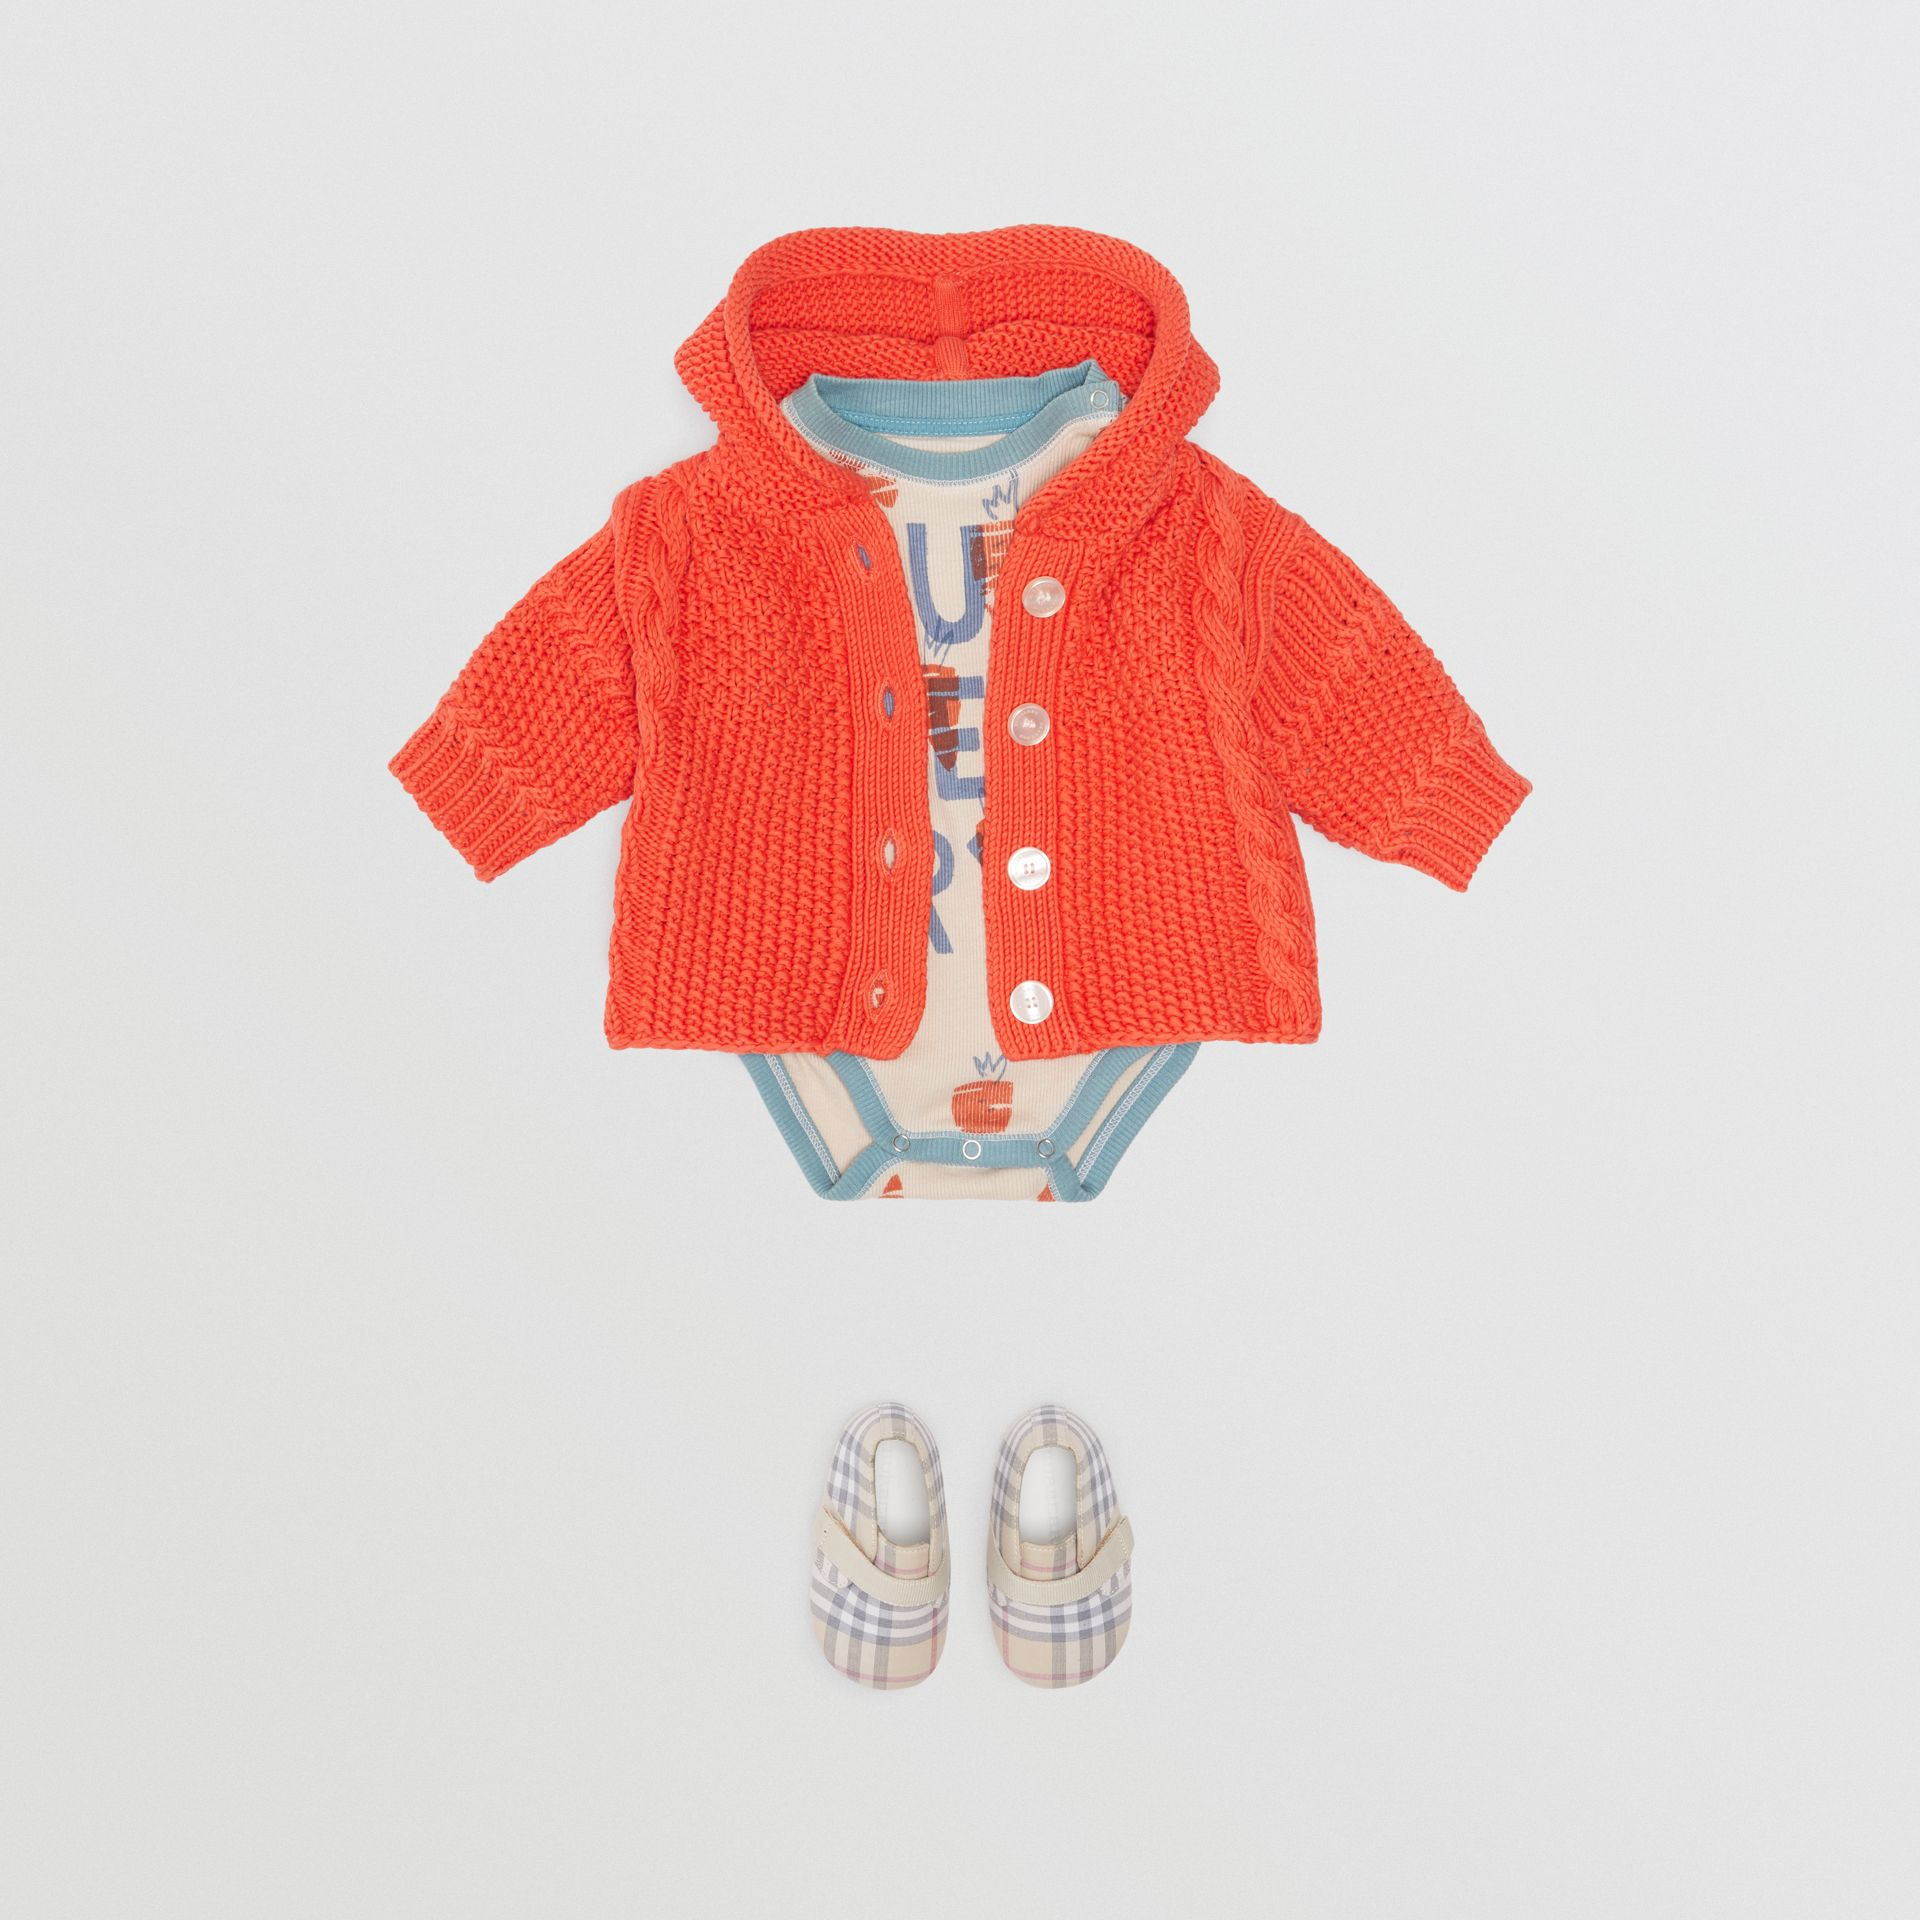 Contrast Knit Cotton Hooded Jacket in Orange Red - Children | Burberry - gallery image 2